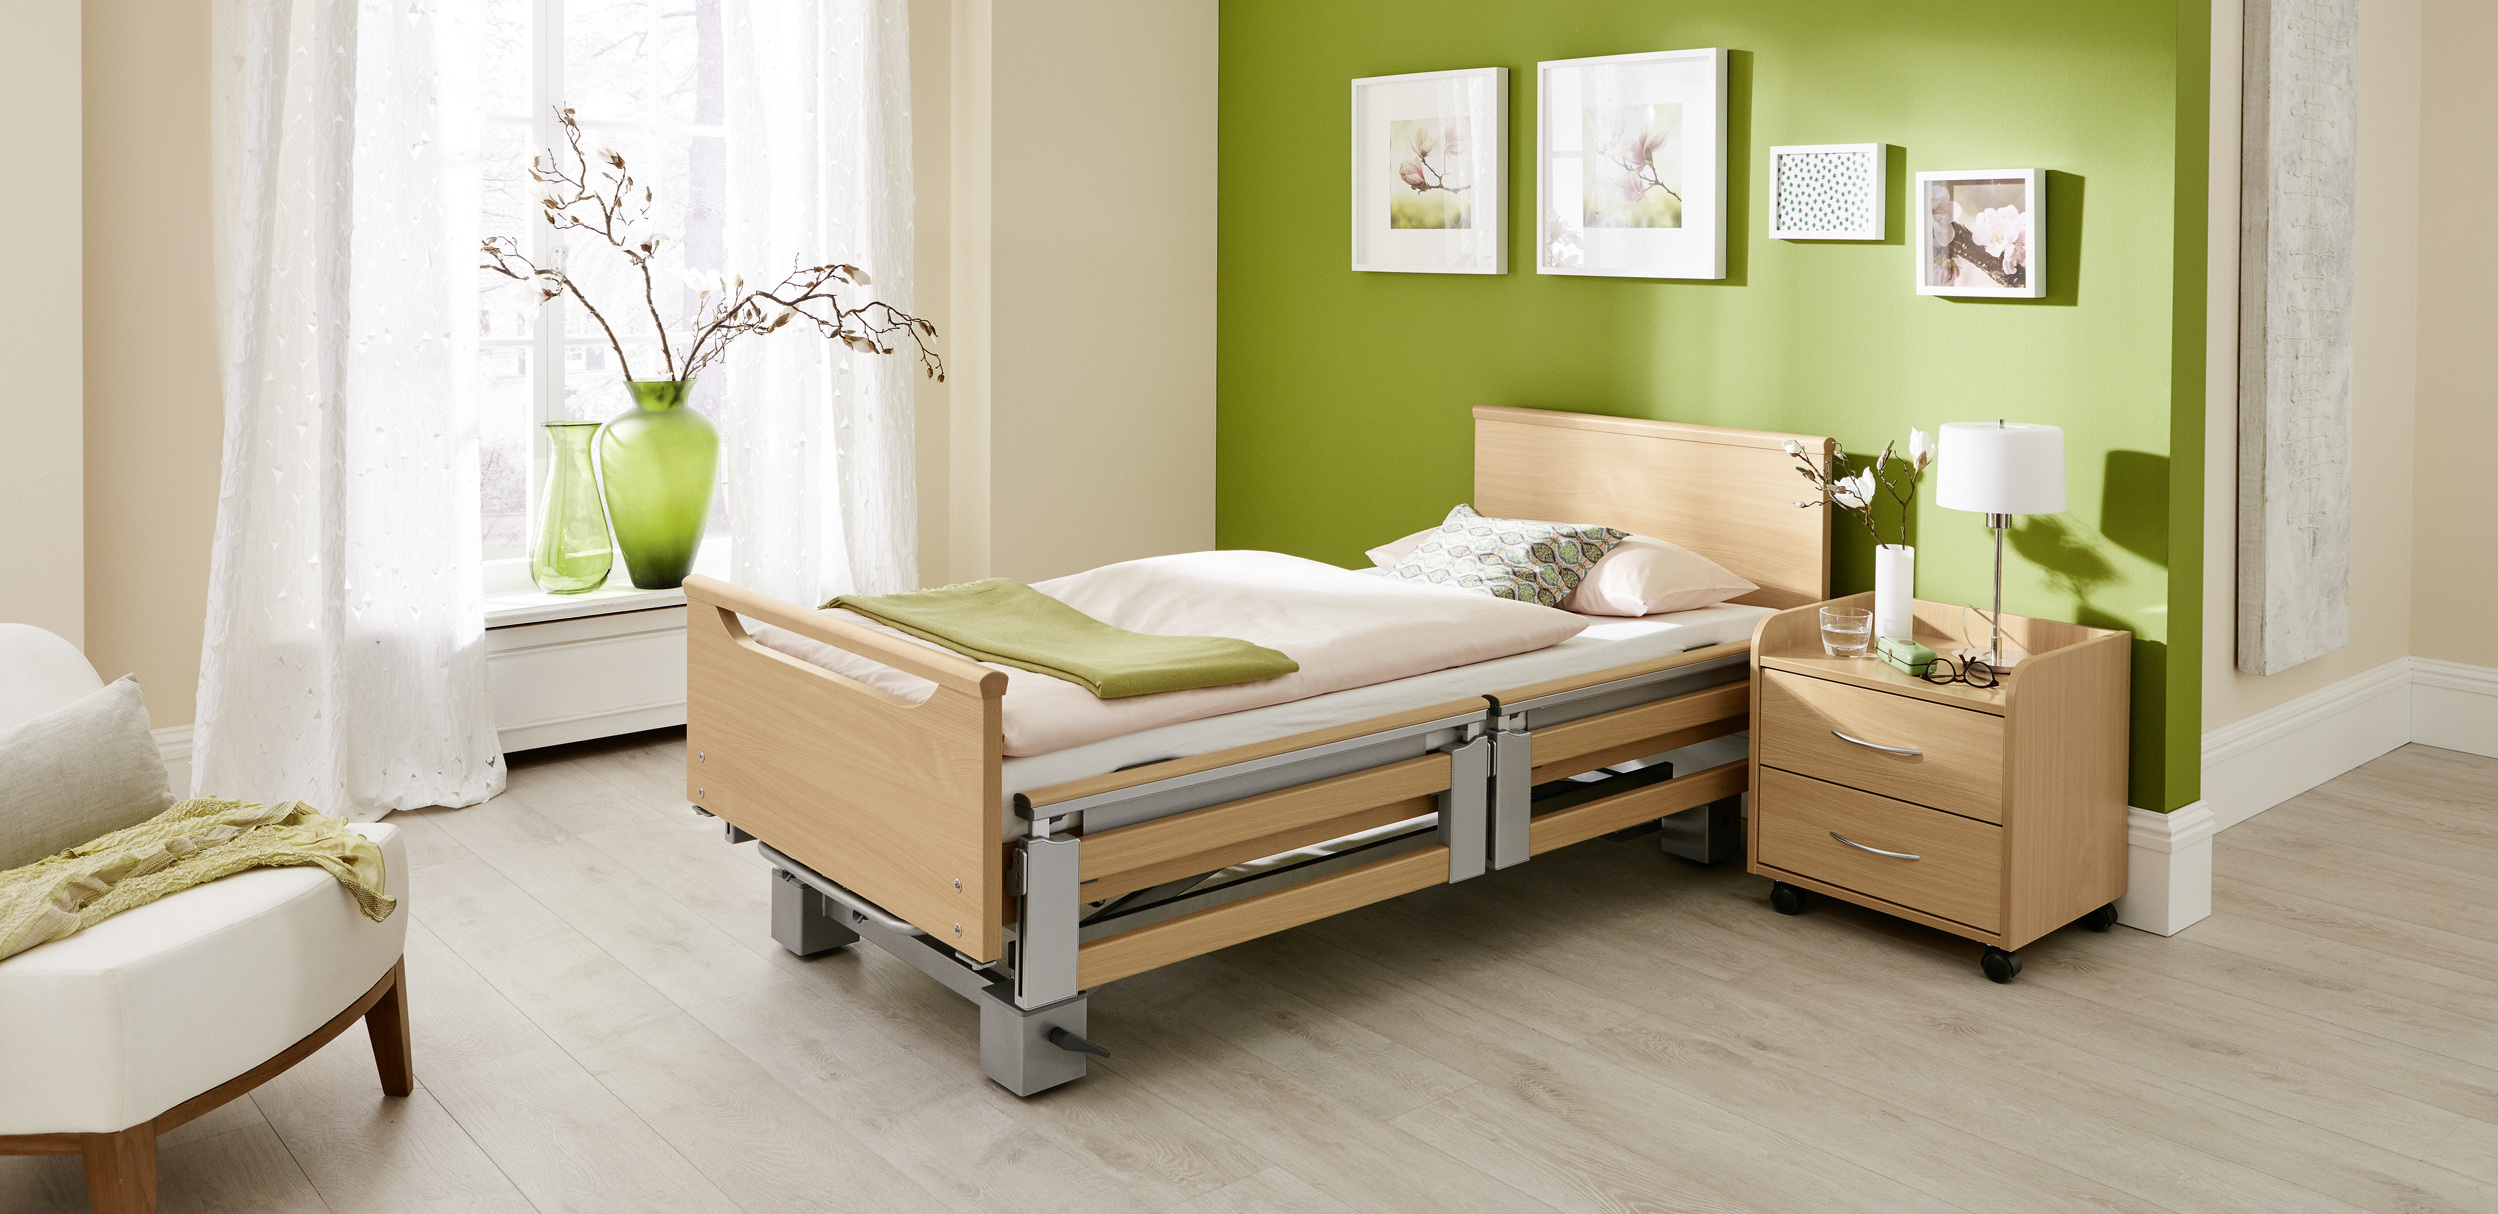 Care beds